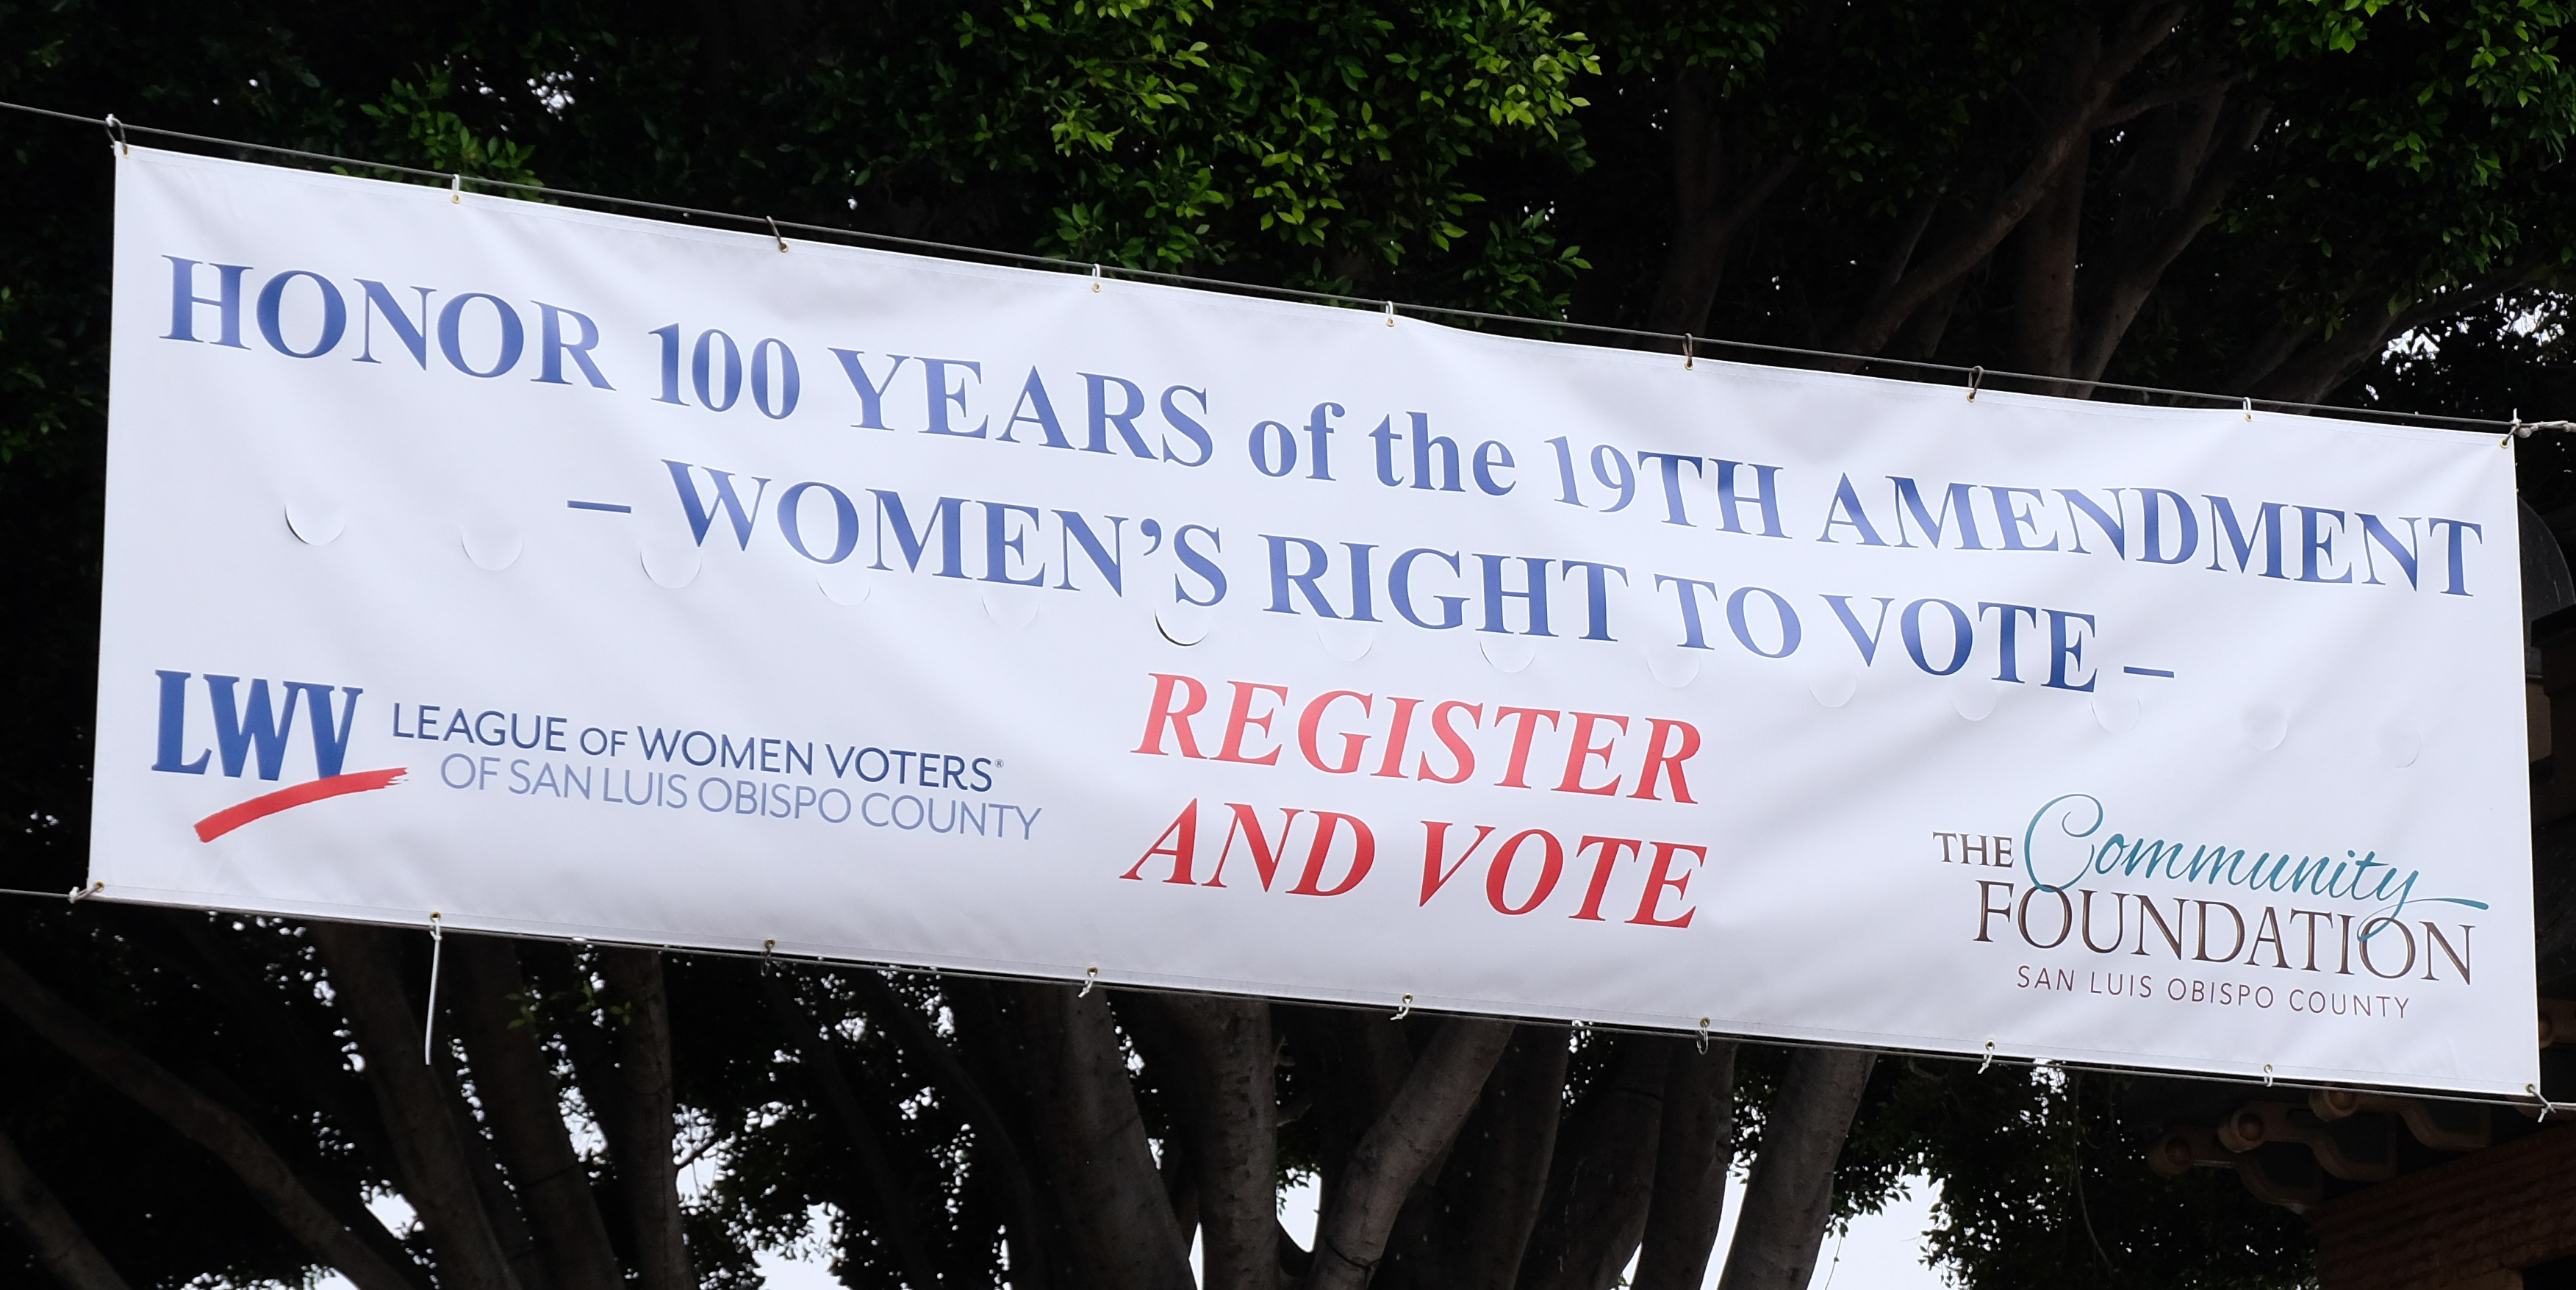 Honor the 100 years of the suffragists' legacy: Register and Vote